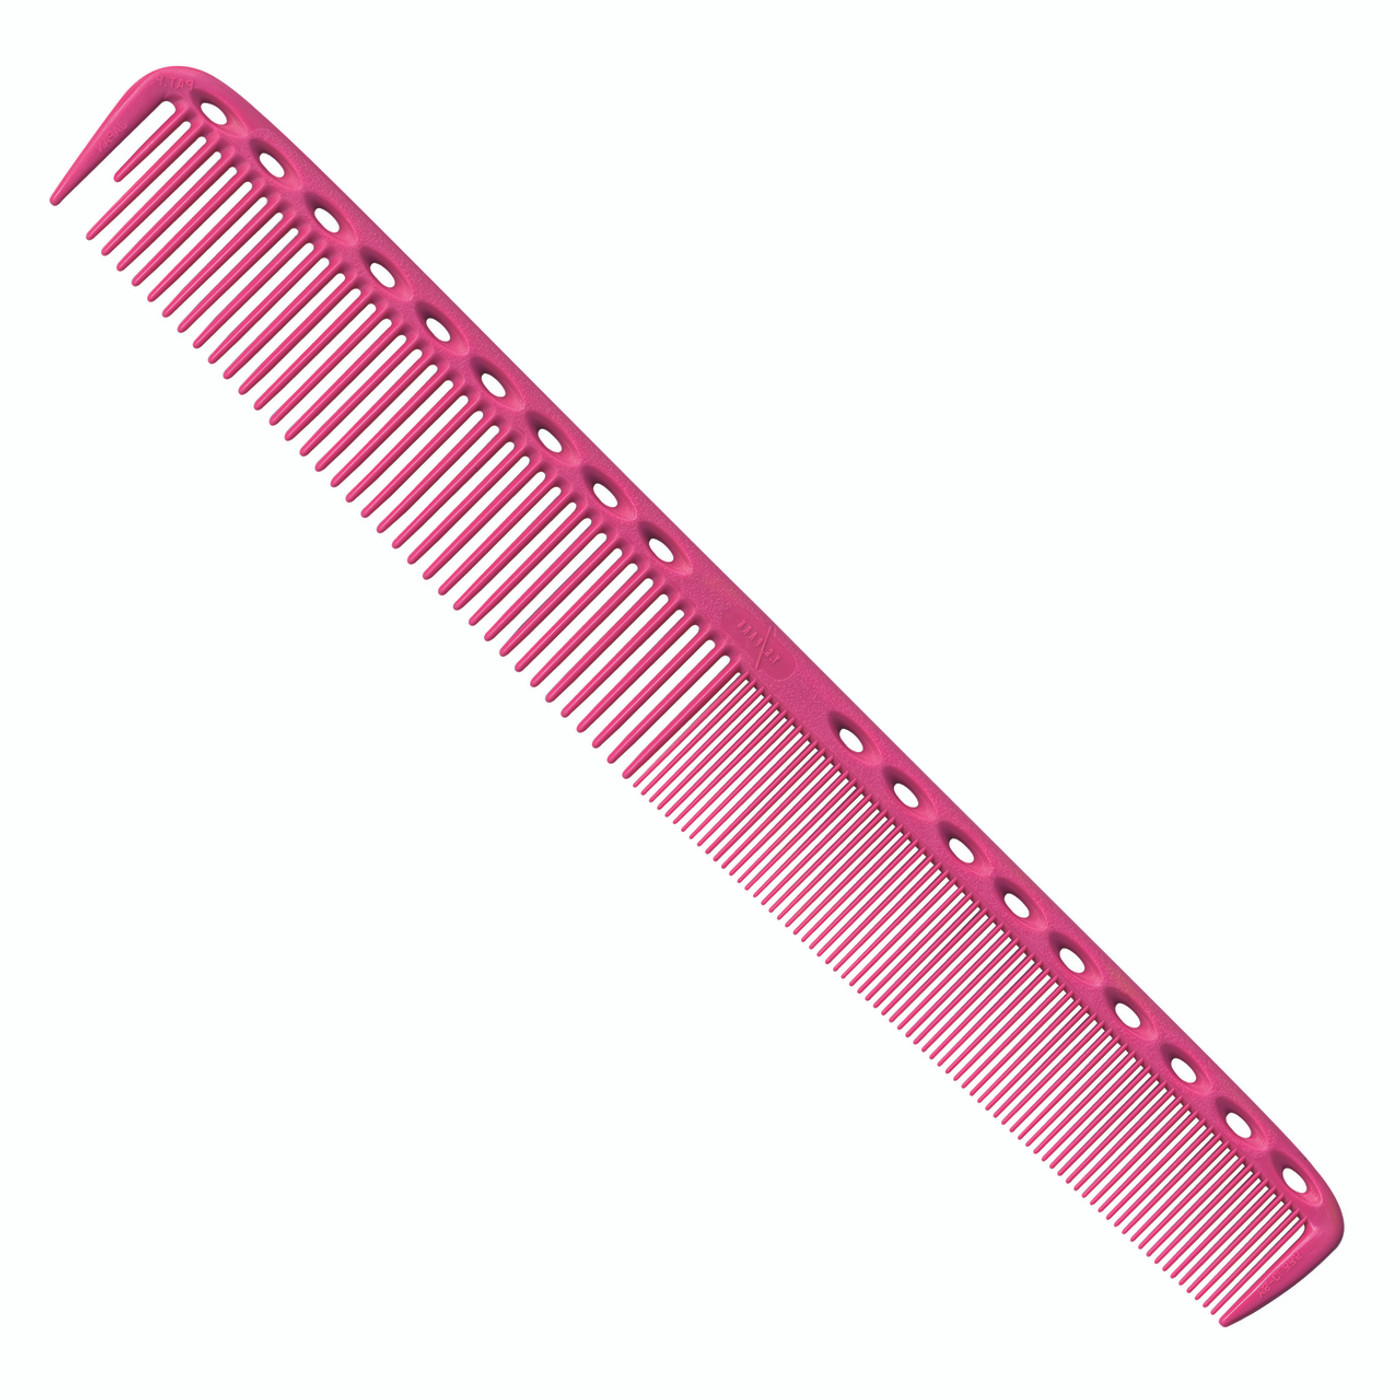 YS Park 335 Long Fine Tooth Cutting Comb - Pink